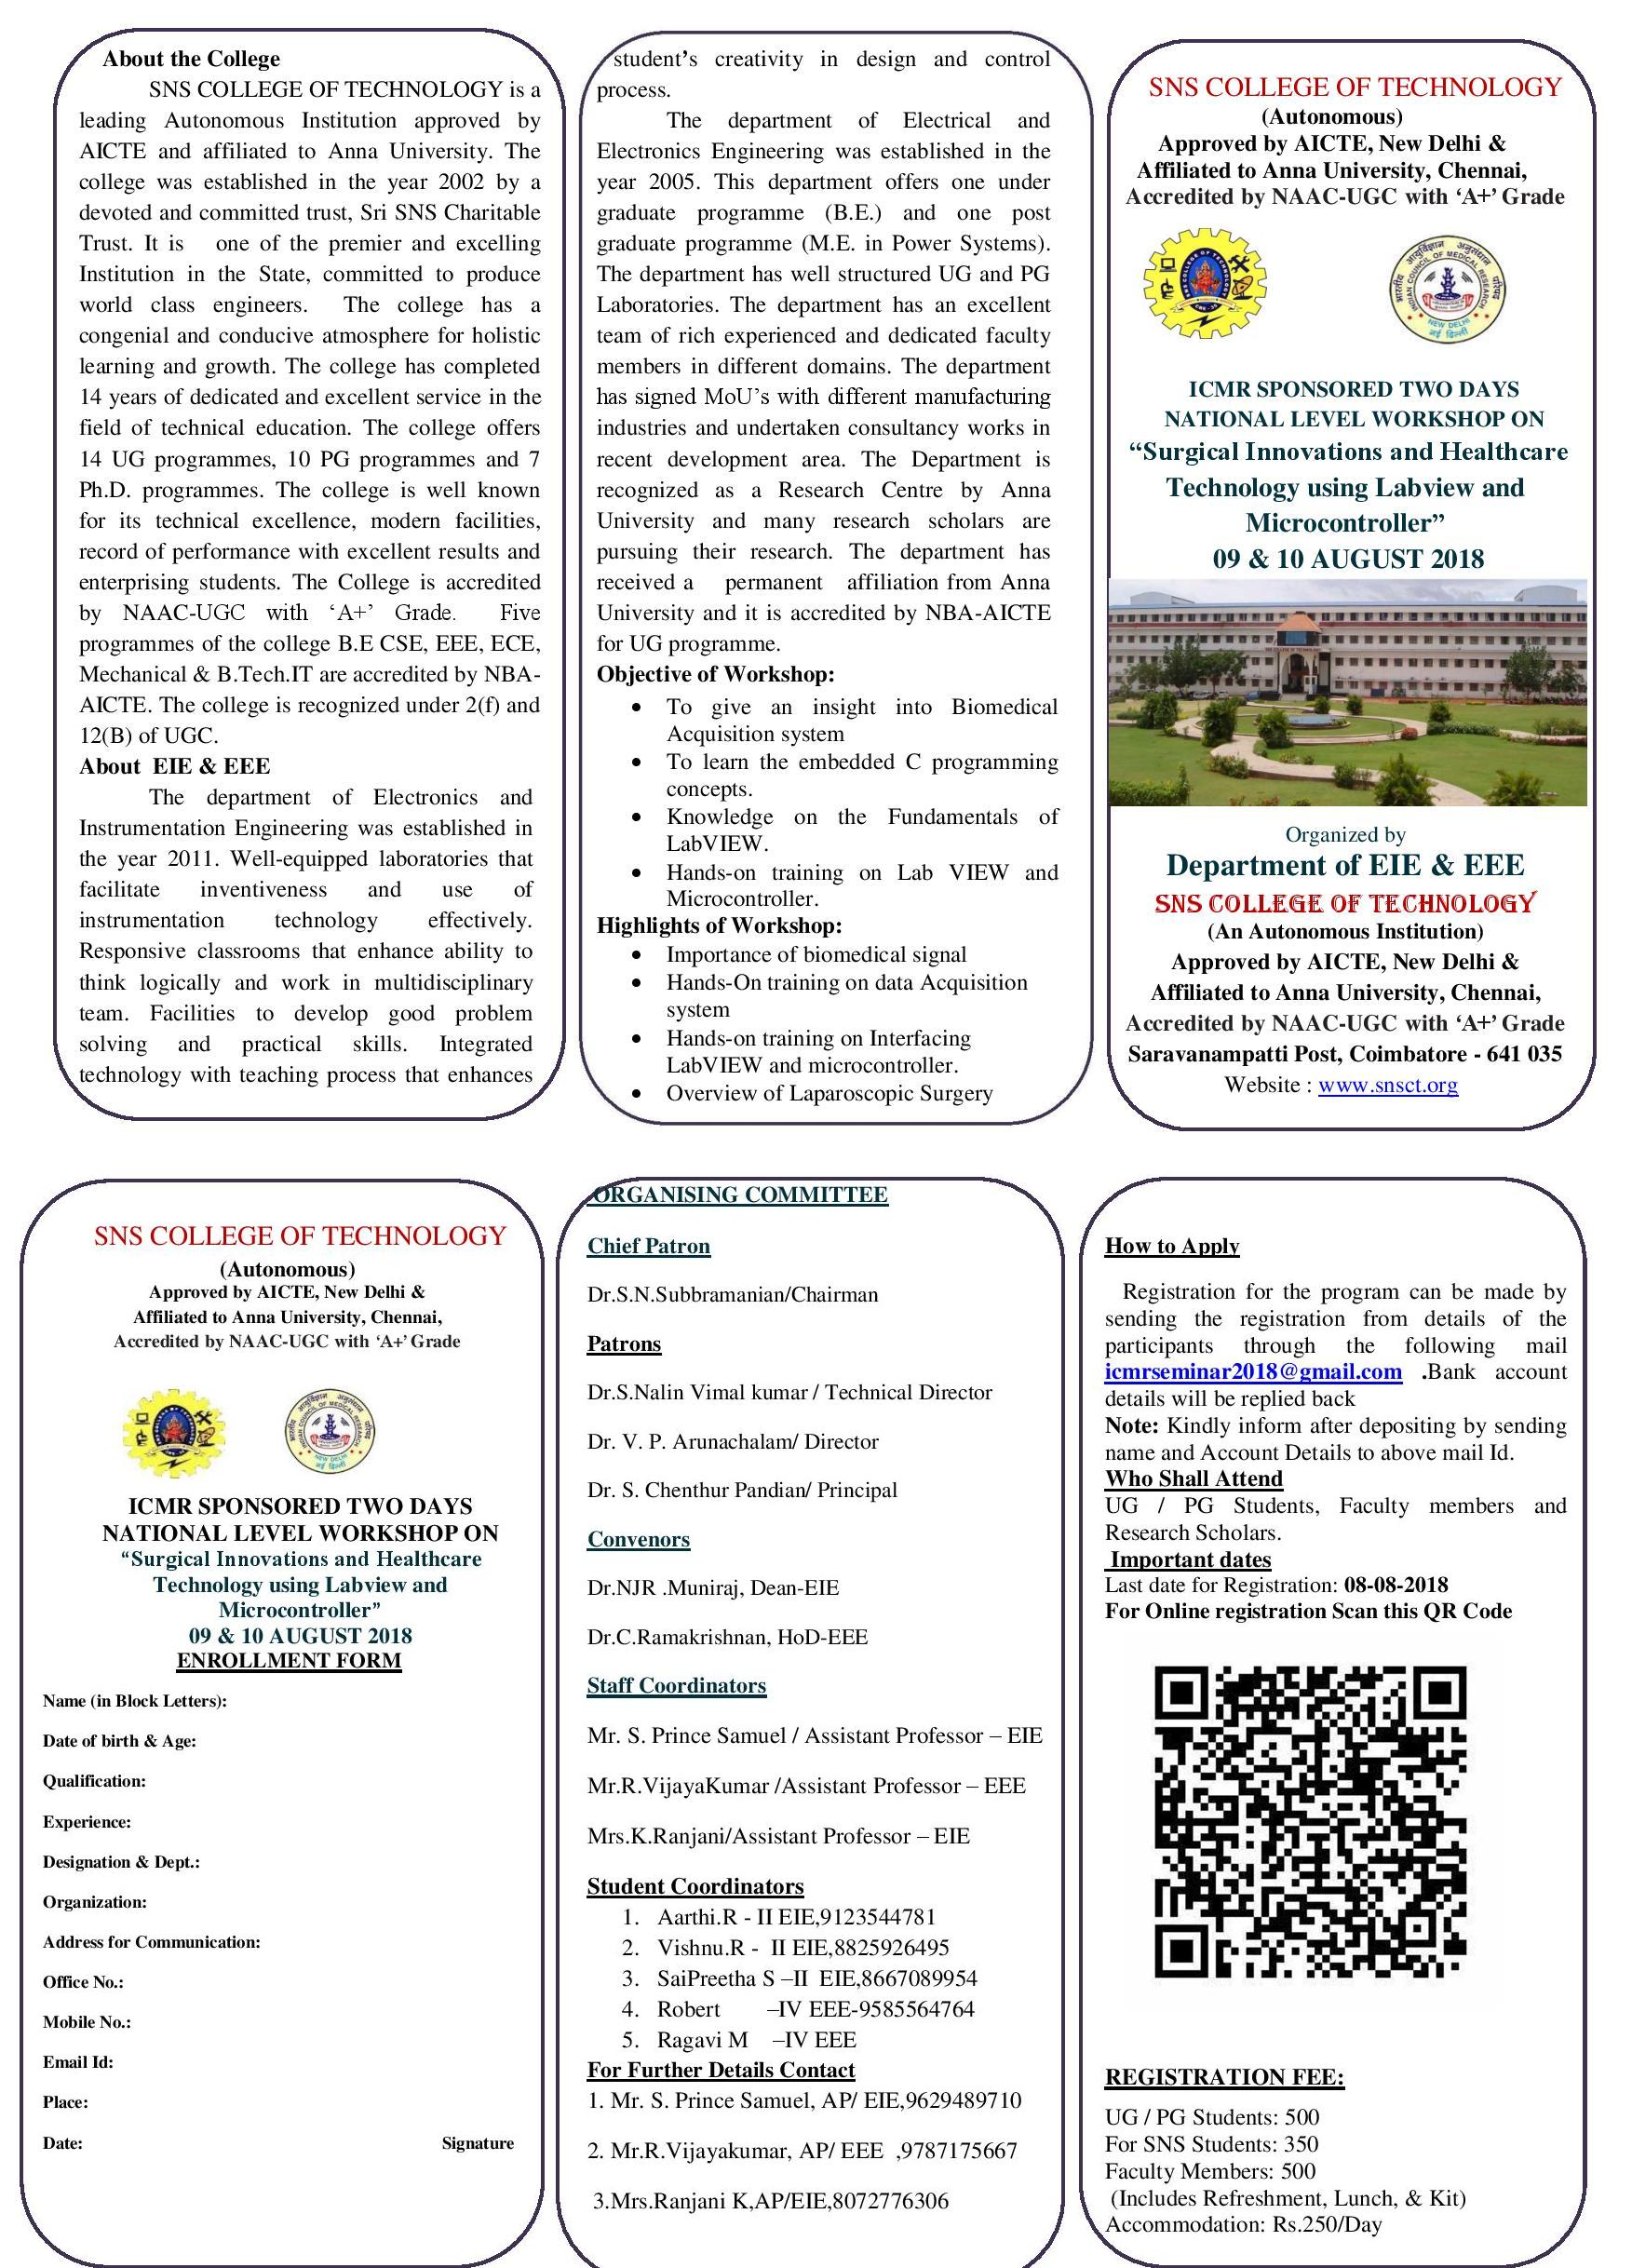 ICMR Sponsored Two Days National Level Workshop on Surgical innovations and Healthcare Technology using Labview and Microcontroller 2018